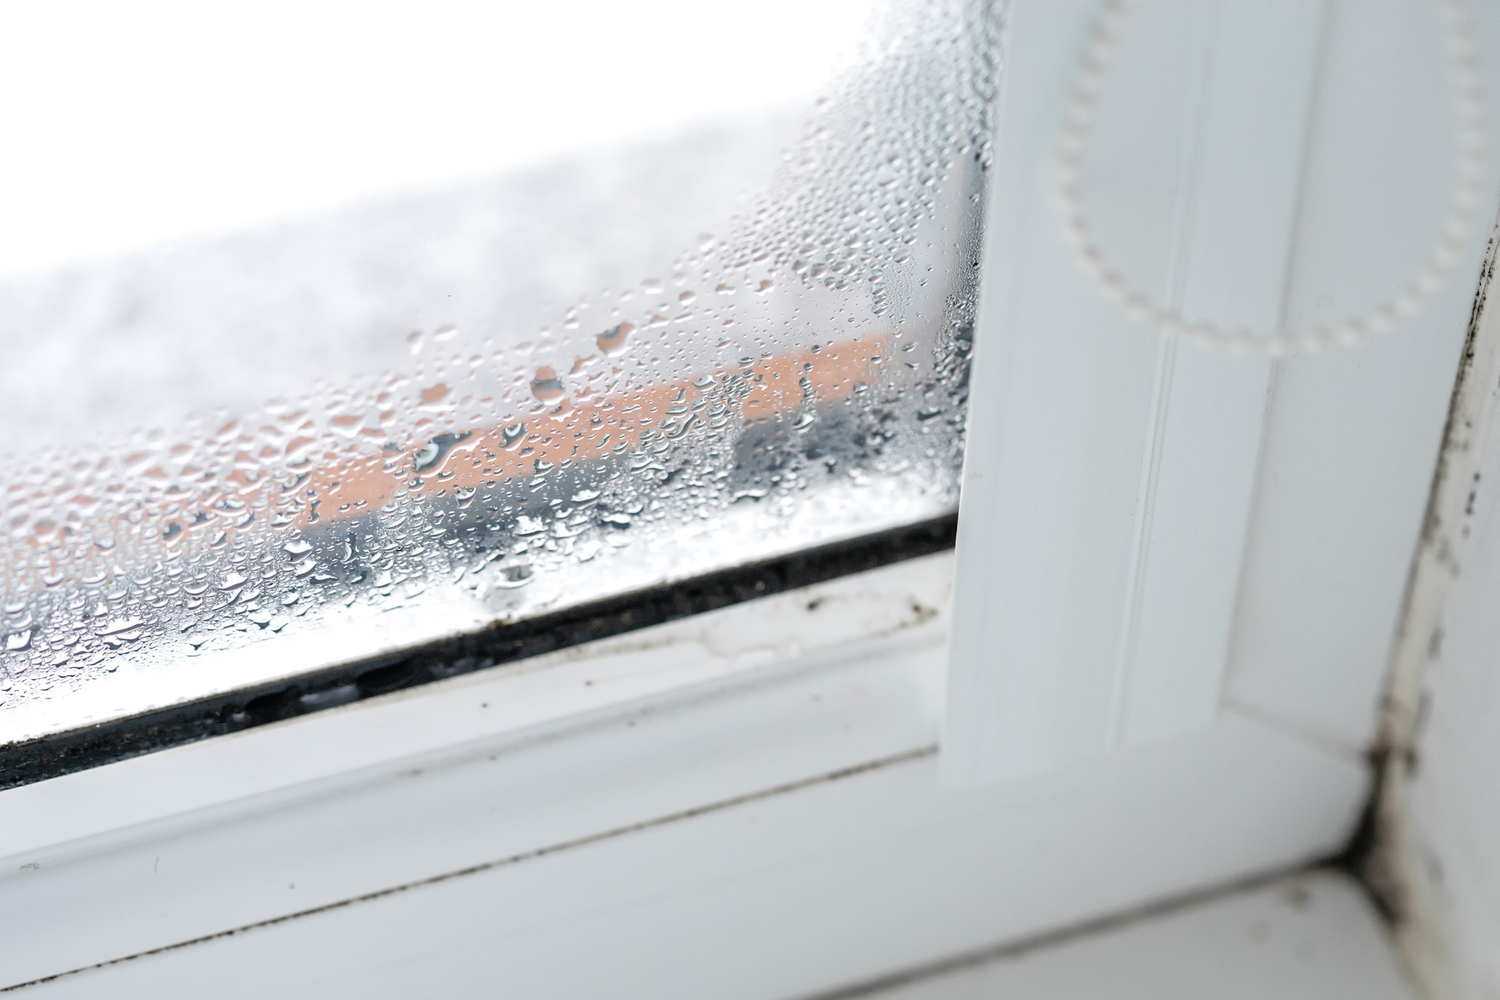 How To Insulate Windows Insulating Windows To Stop Heat Loss In Seattle Procraft Windows